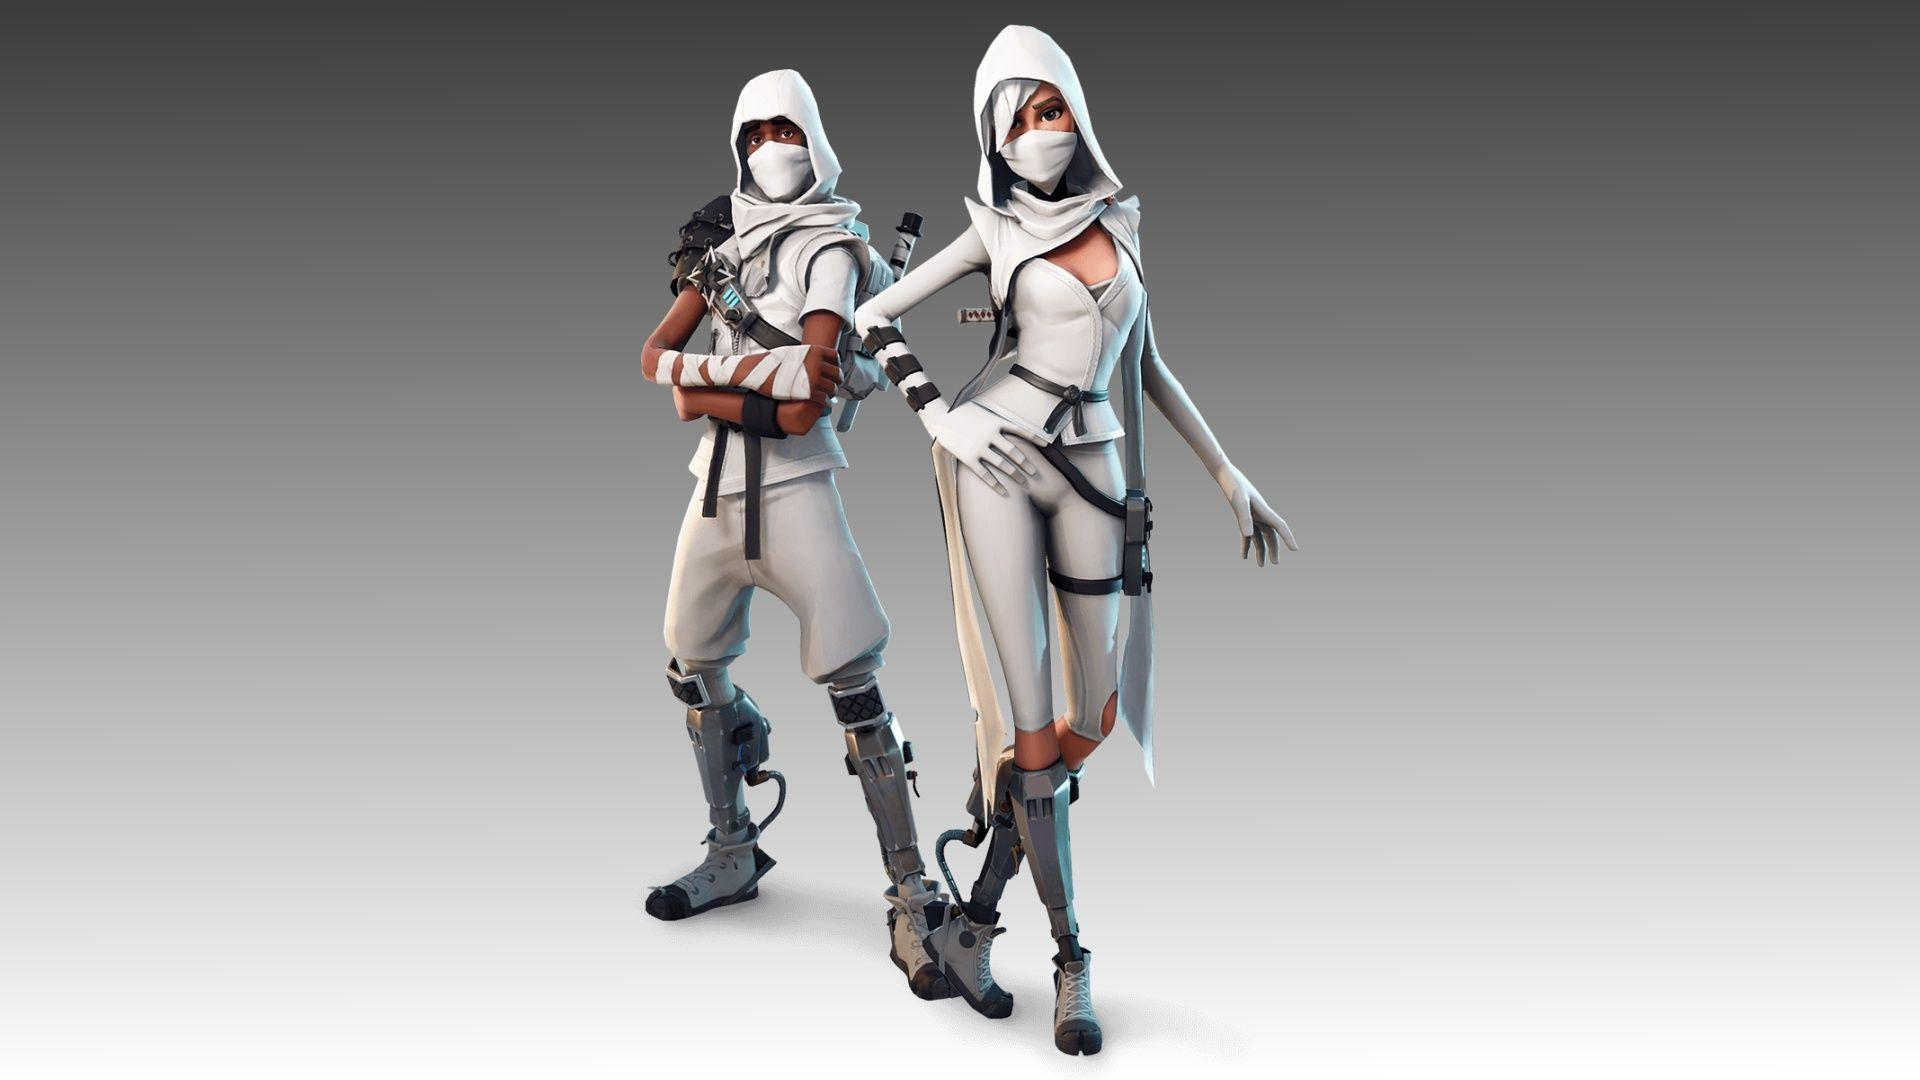 Are we ever going to see slim skins in FortniteBR? : FortNiteBR